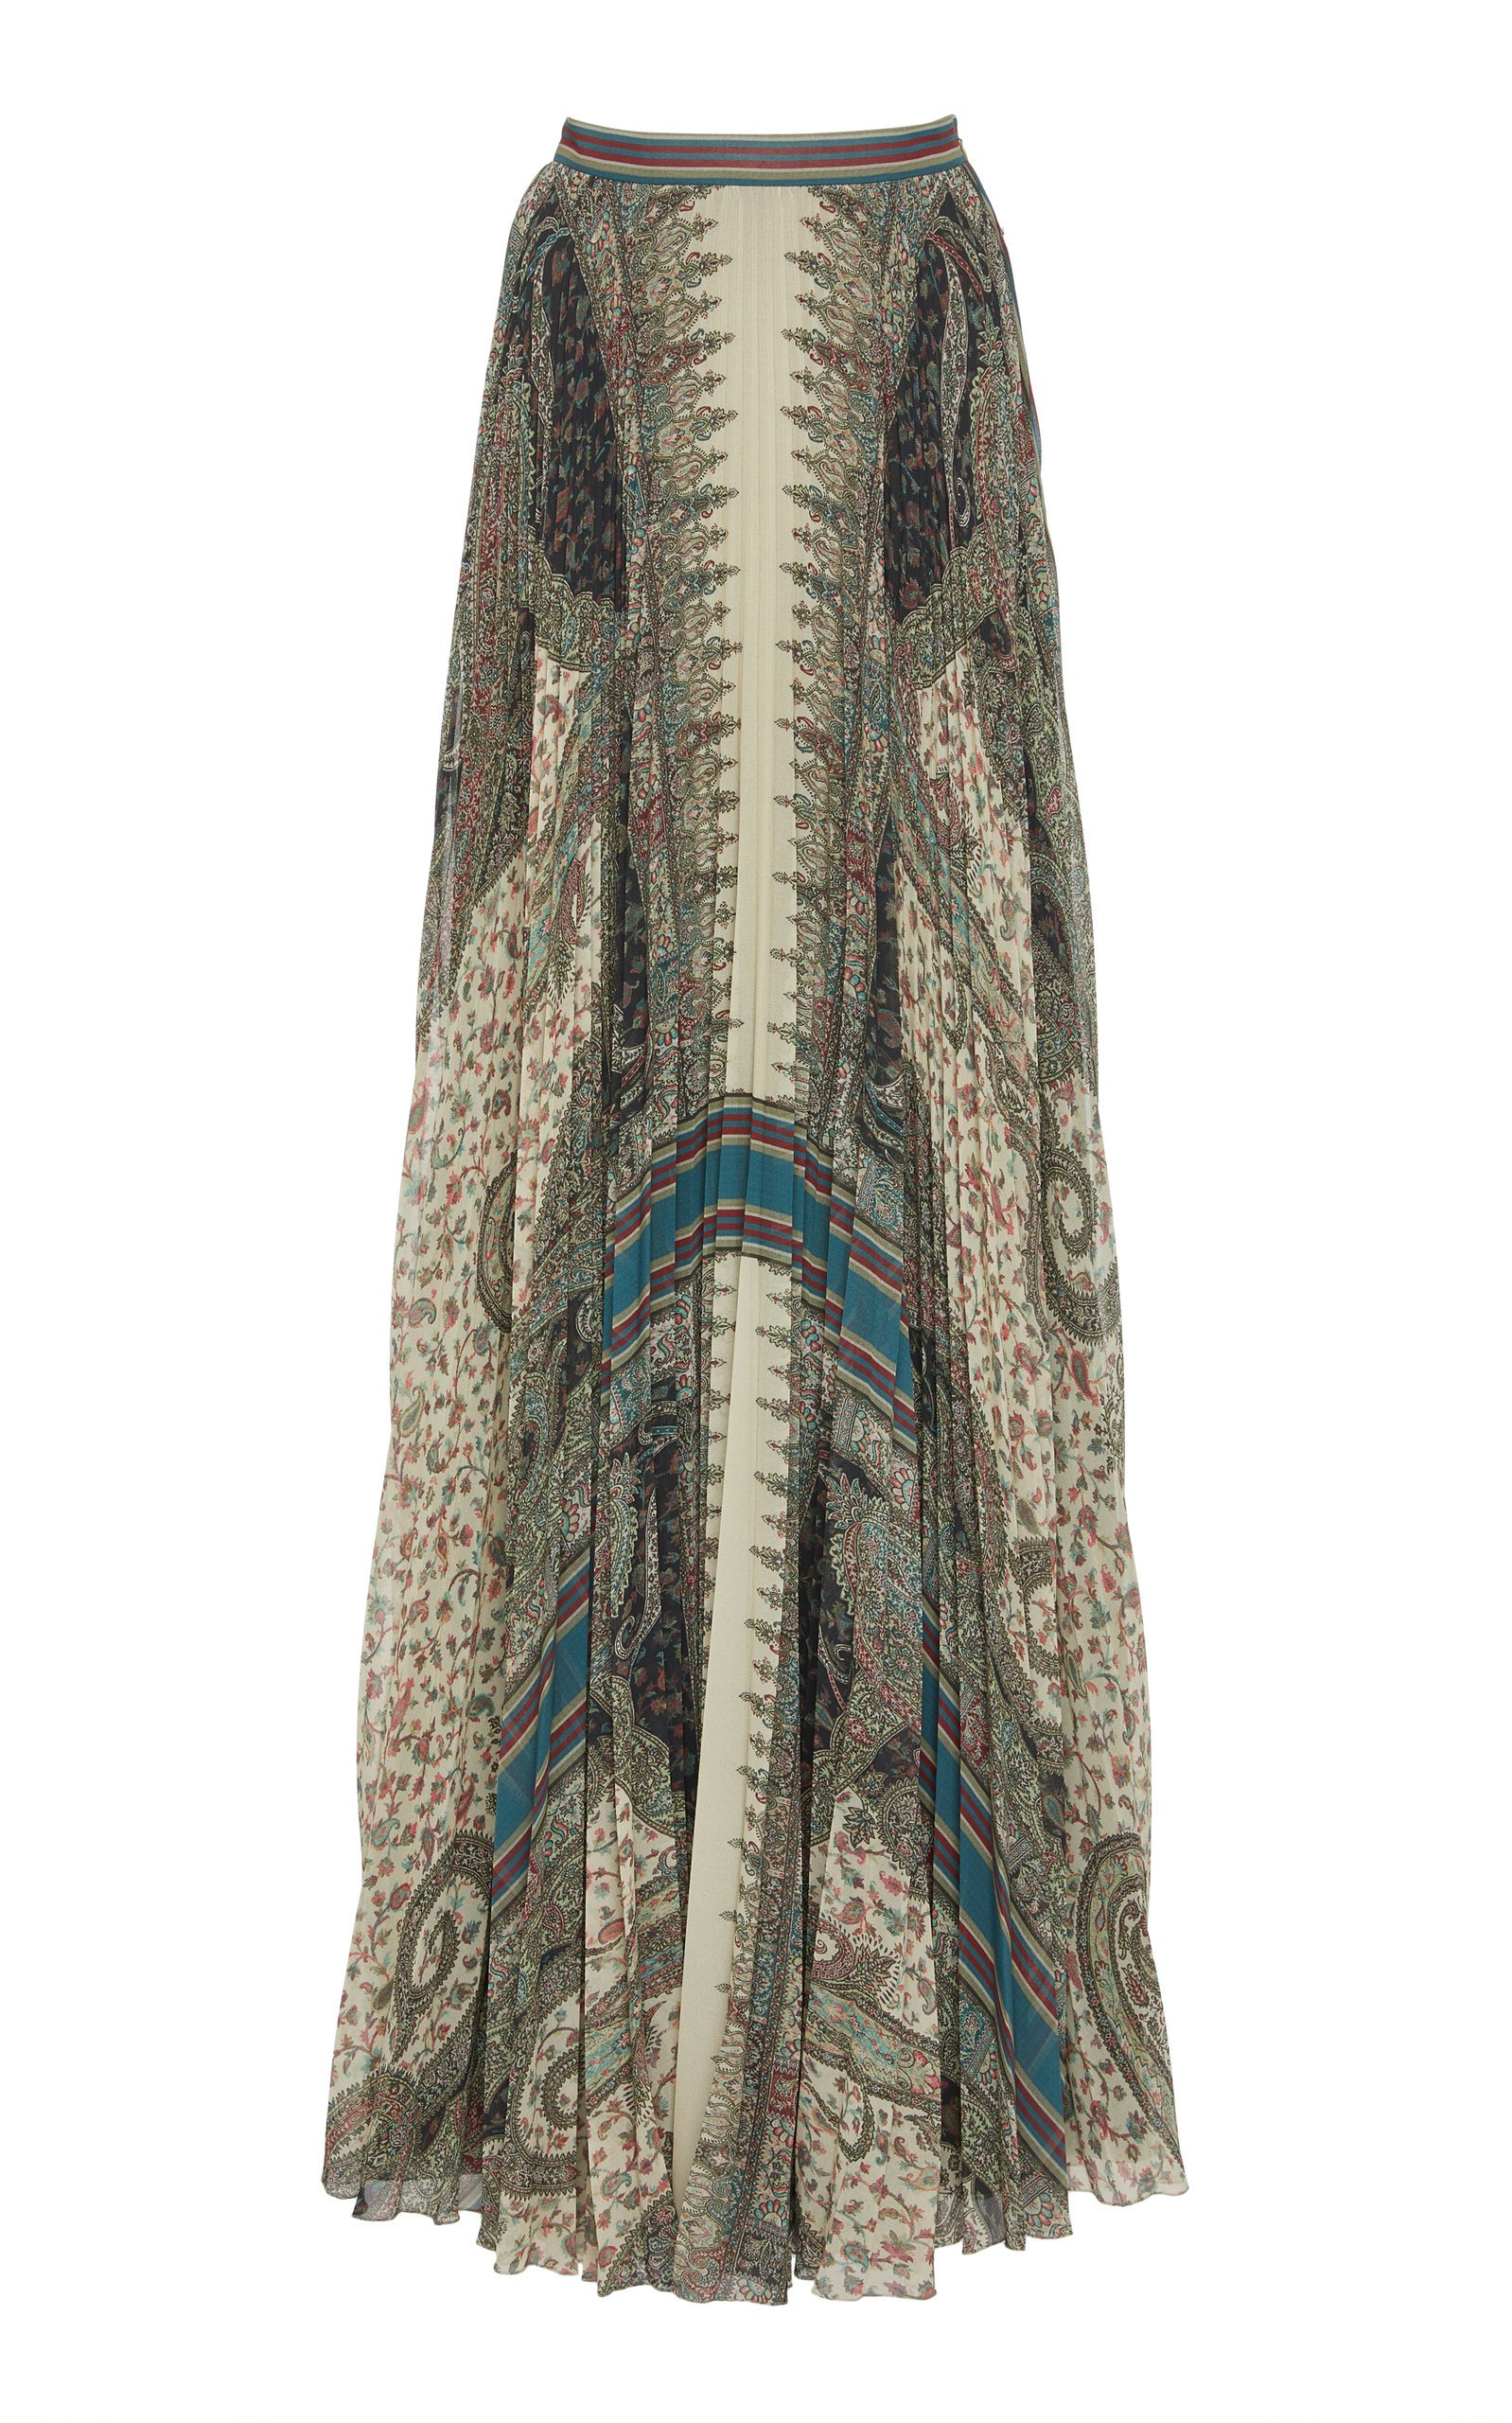 Etro Pleated Printed Crepe Skirt Size: 42